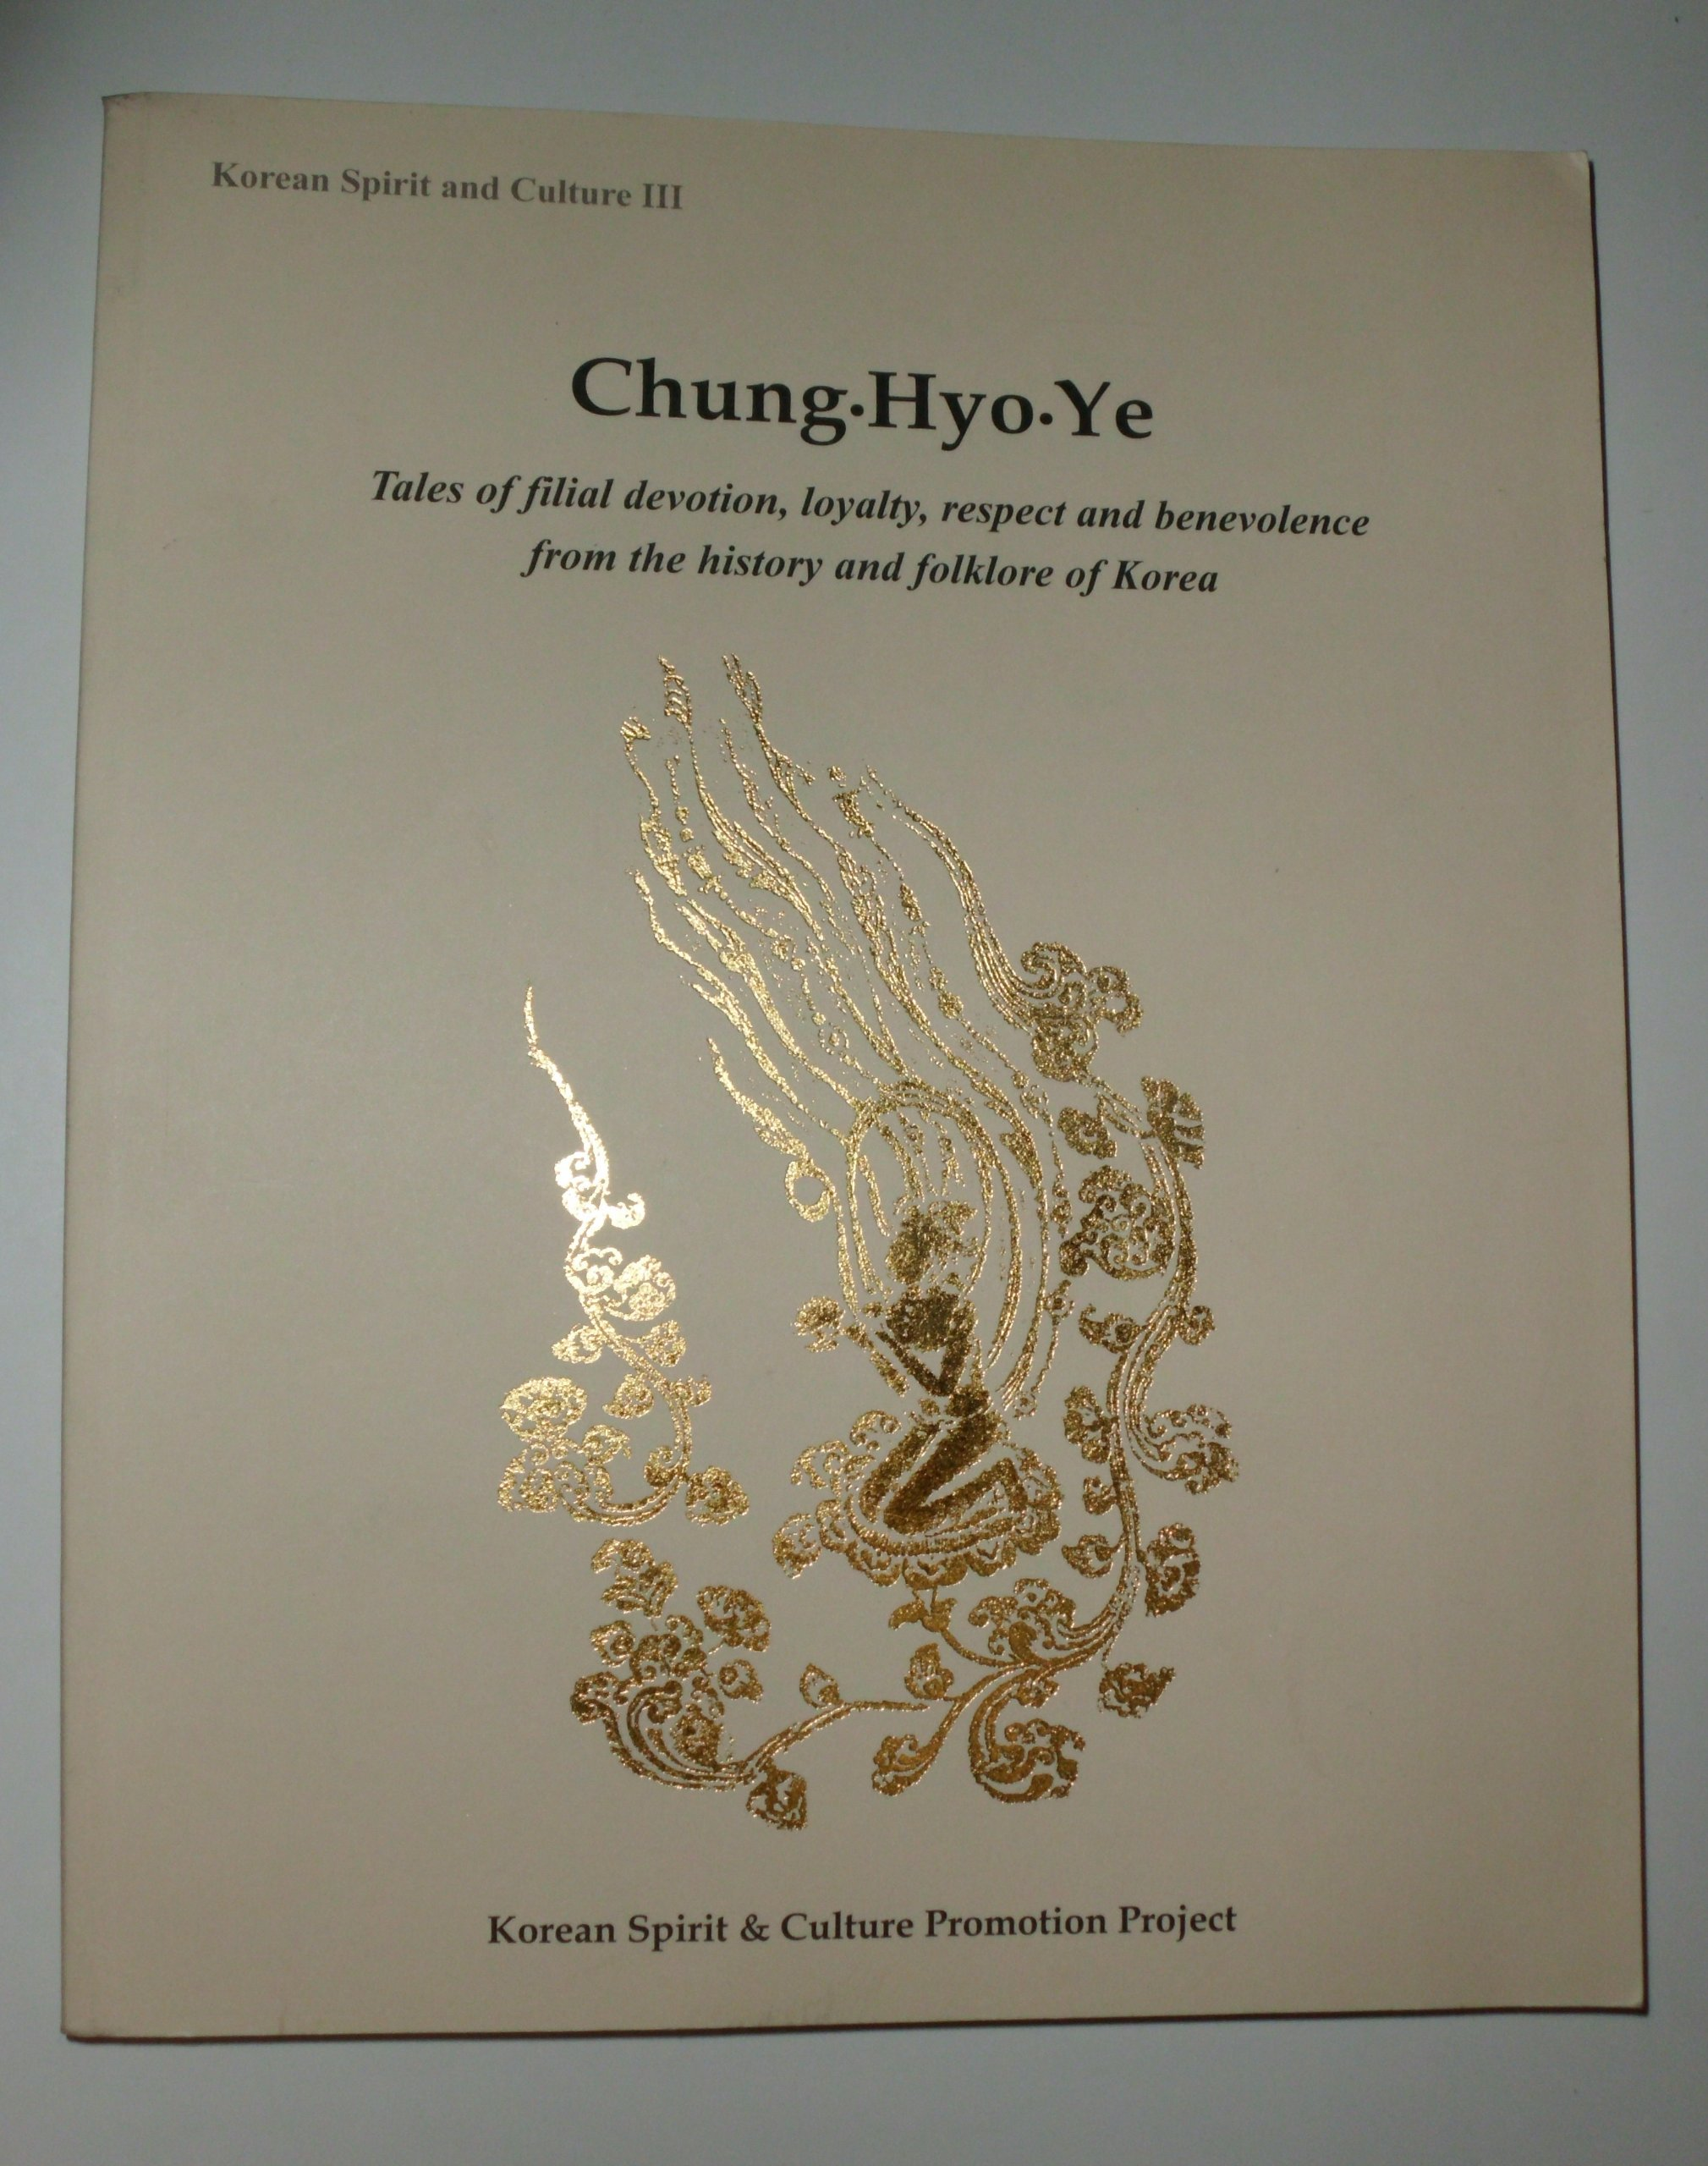 Chung, Hyo, Ye: Tales of Filial Devotion, Loyalty, Respect and Benevolence from the History and Folklore of Korea pdf